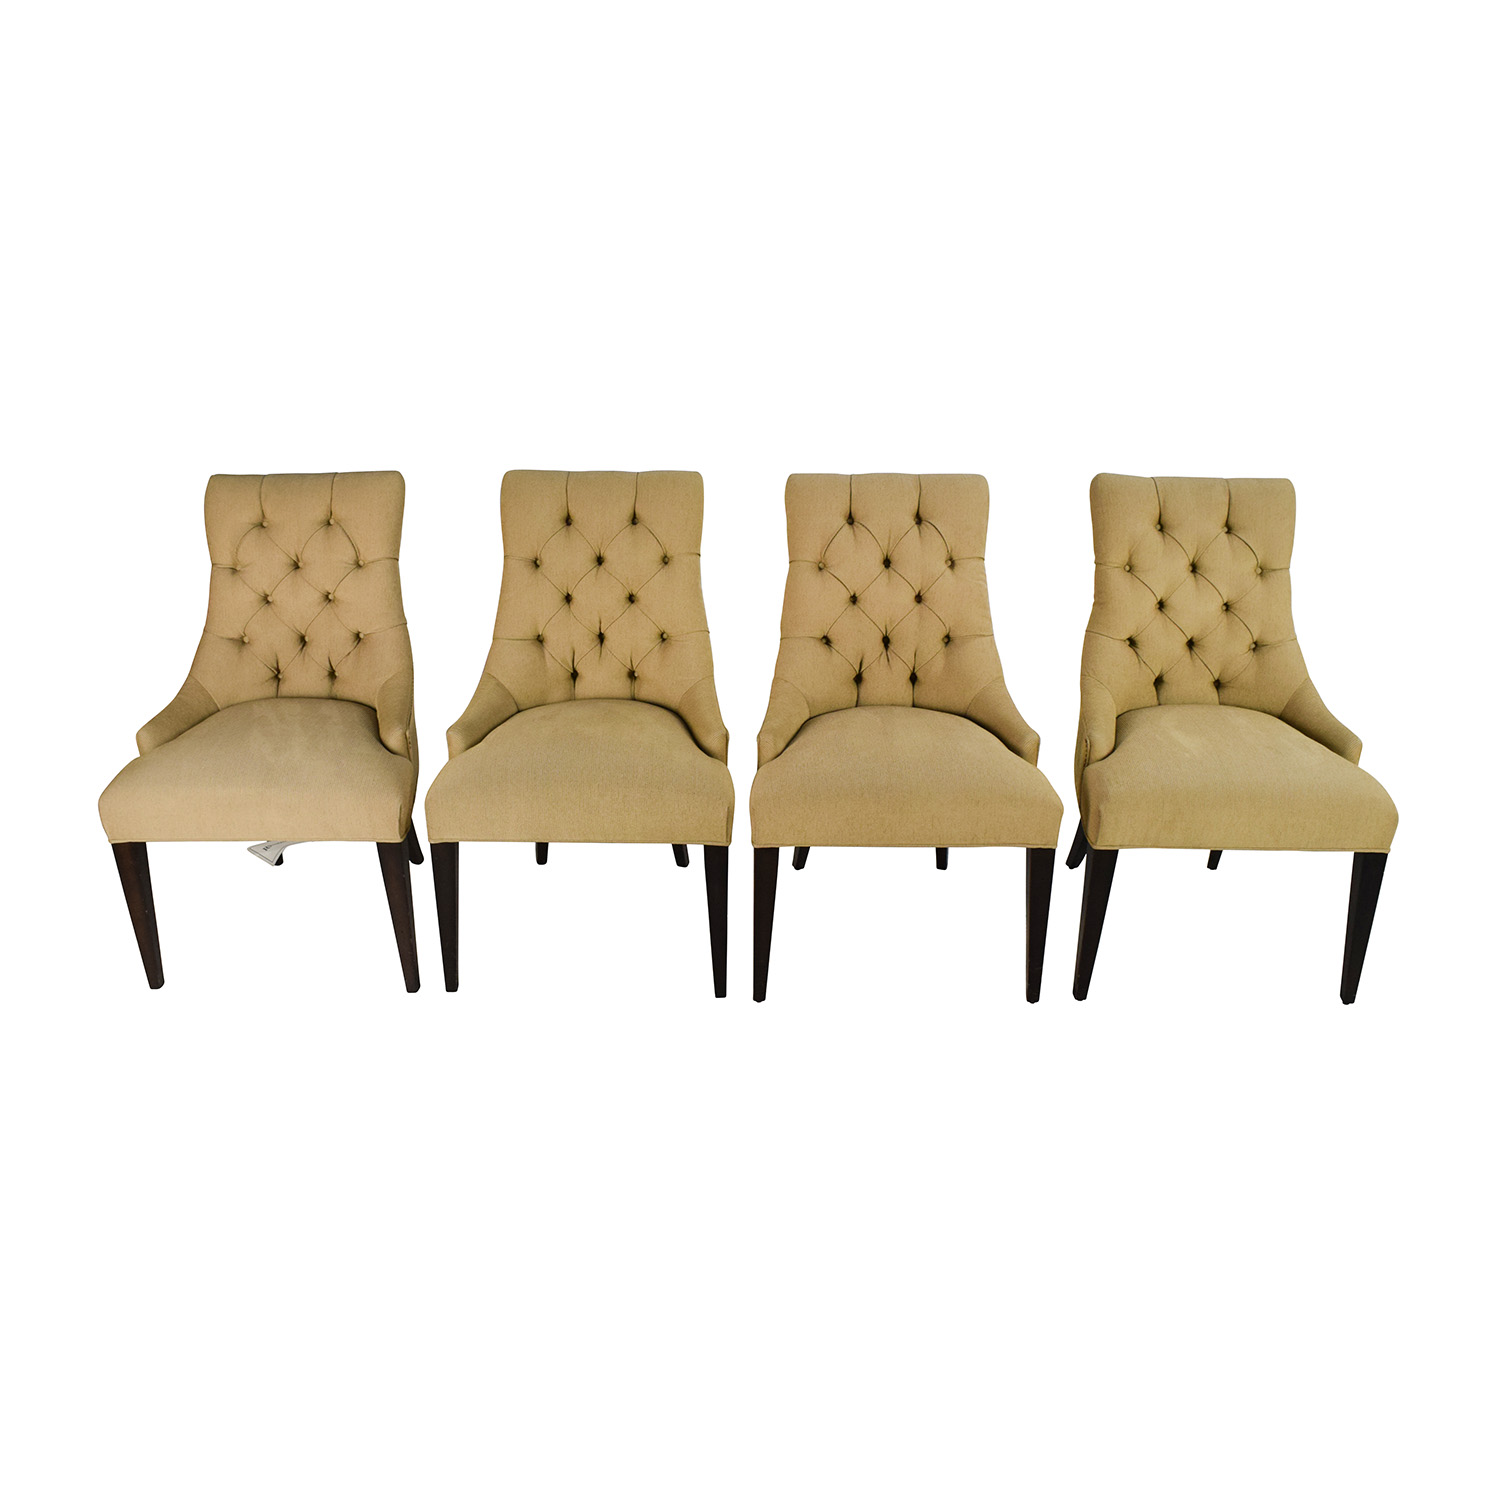 Restoration Hardware Restoration Hardware Martine Tufted Fabric Armchair Set Dining Chairs